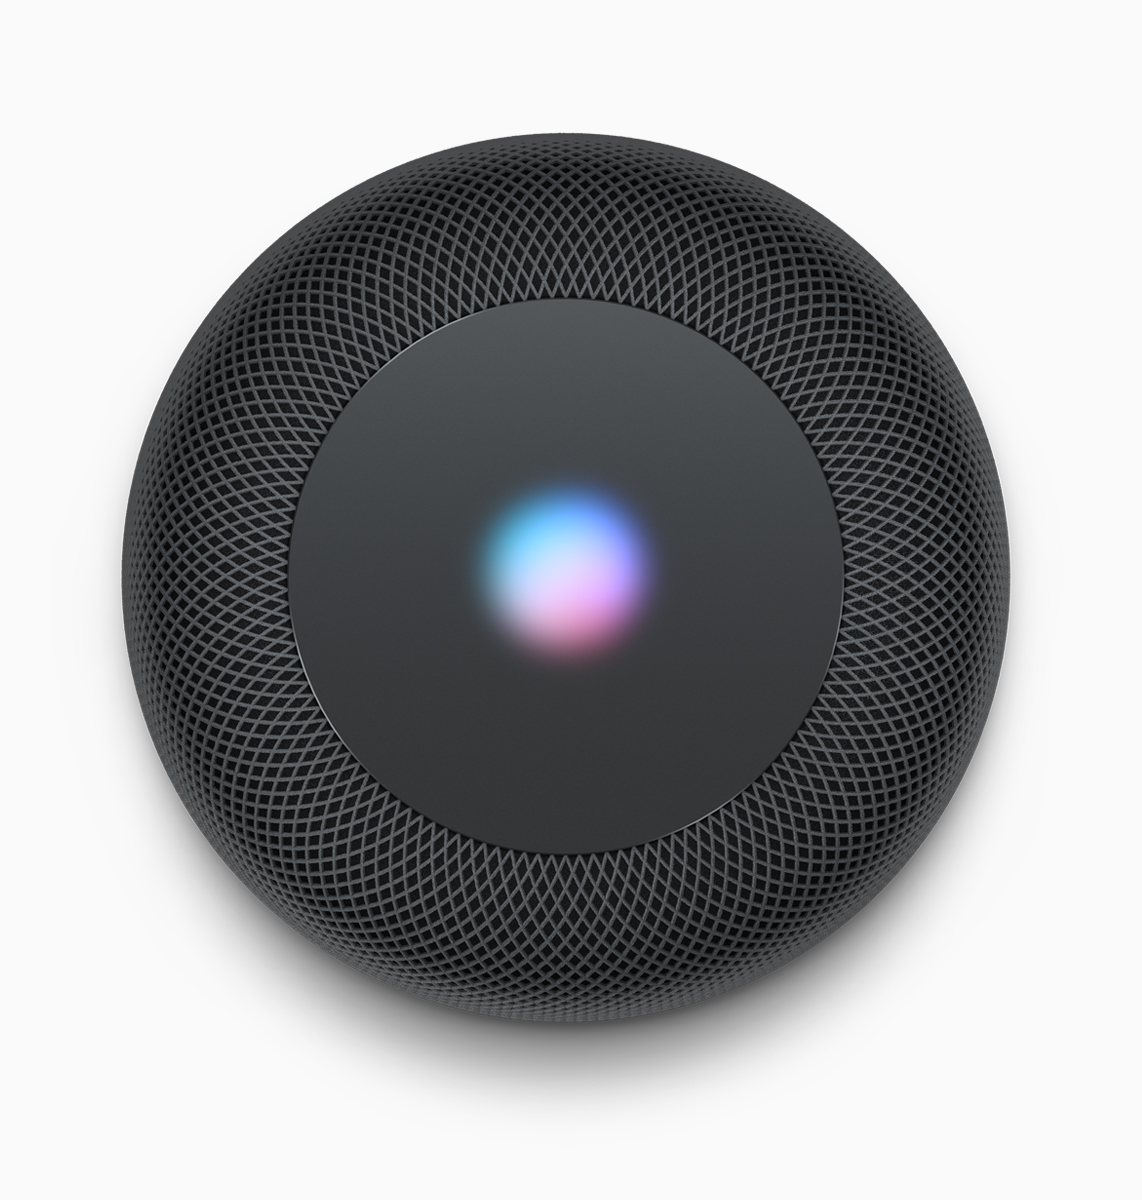 New Smart Speaker Expected as Apple Kicks Off Worldwide Developers Conference